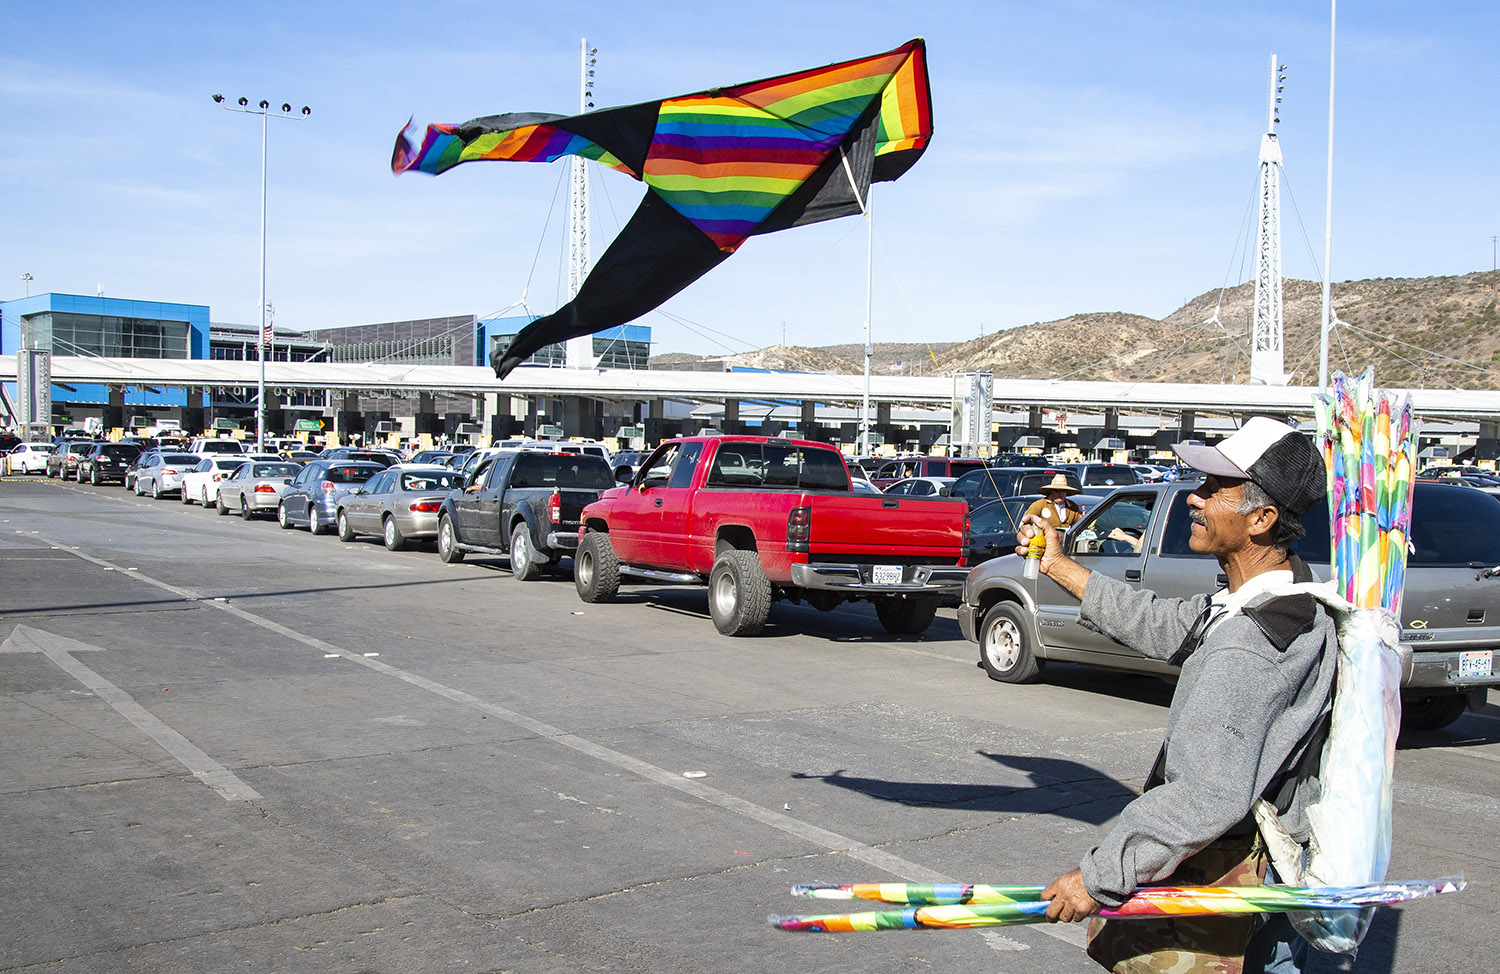 San Ysidro-USA-Mexico-Border-traffic-kite-flyer.jpg